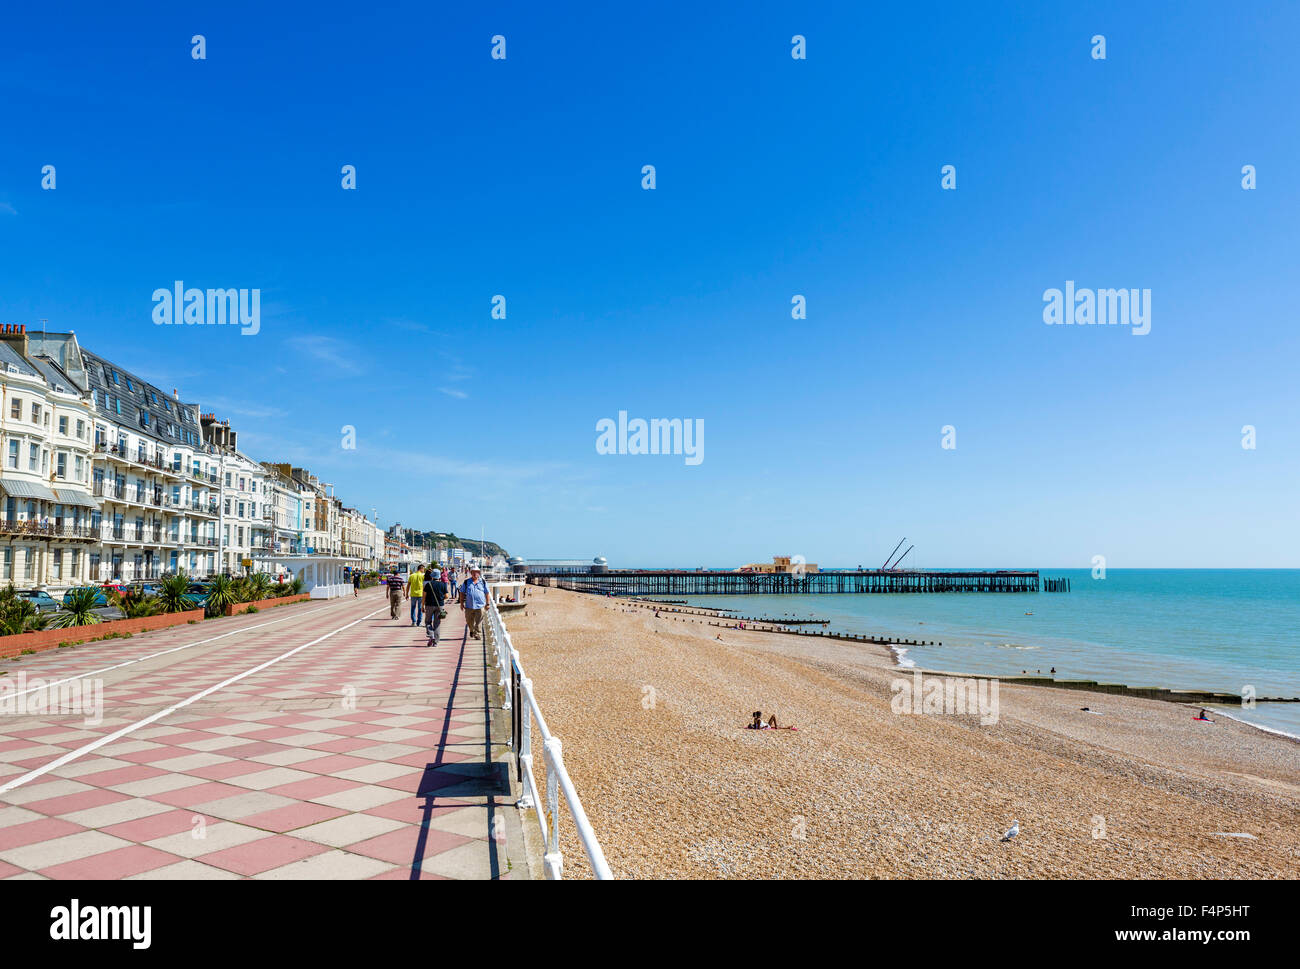 The seafront promenade and beach with the burnt out pier in the distance, Hastings, East Sussex, England, UK - Stock Image